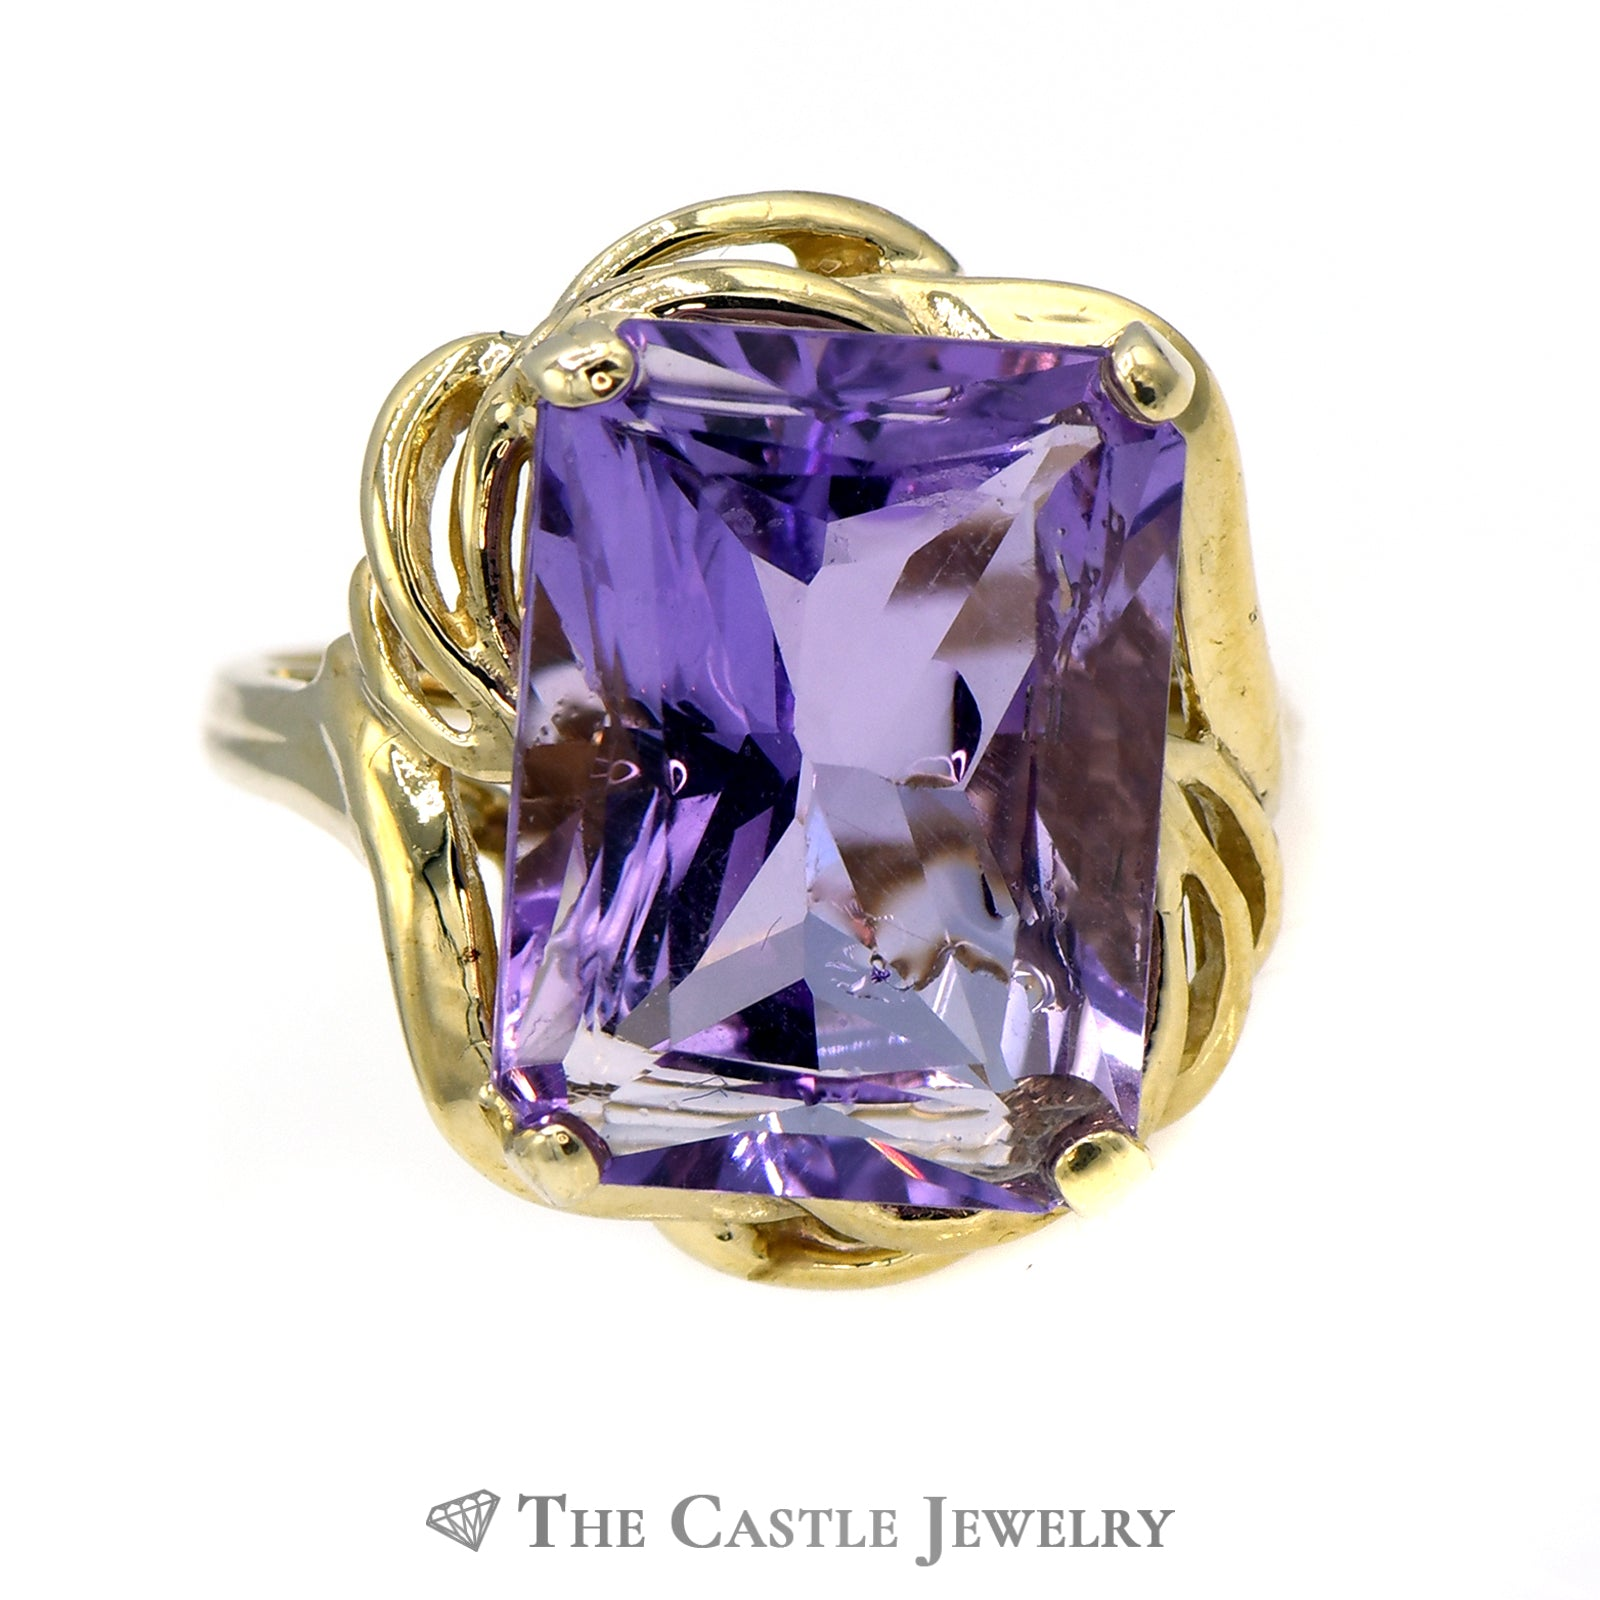 Emerald Cut Amethyst Ring with Swirl Designed 10k Yellow Gold Mounting